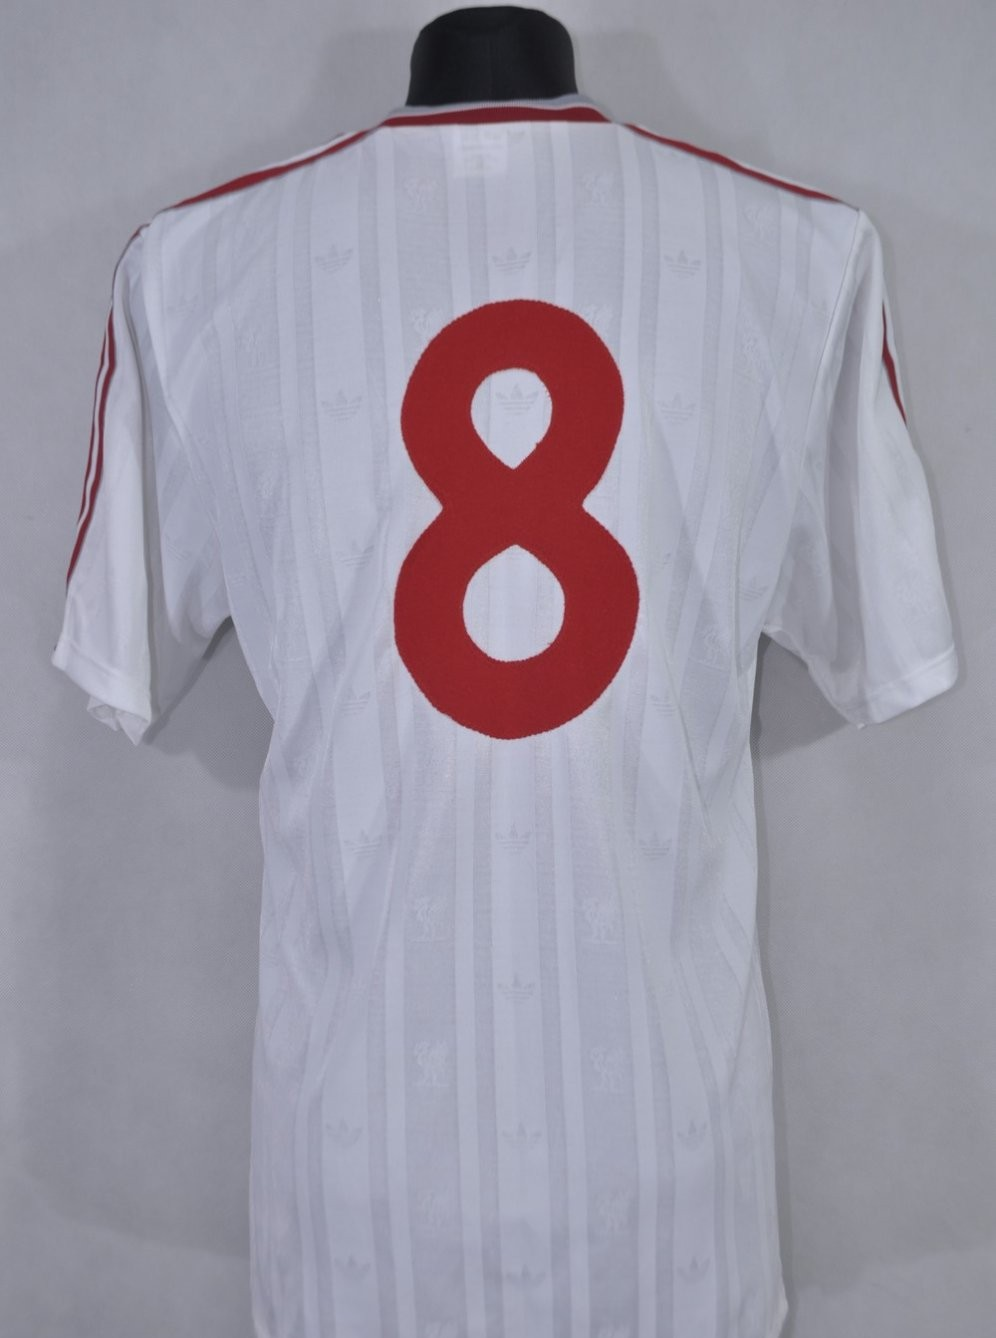 quality design 8b5e2 1e59b Liverpool Third football shirt 1988 - 1989. Sponsored by Candy